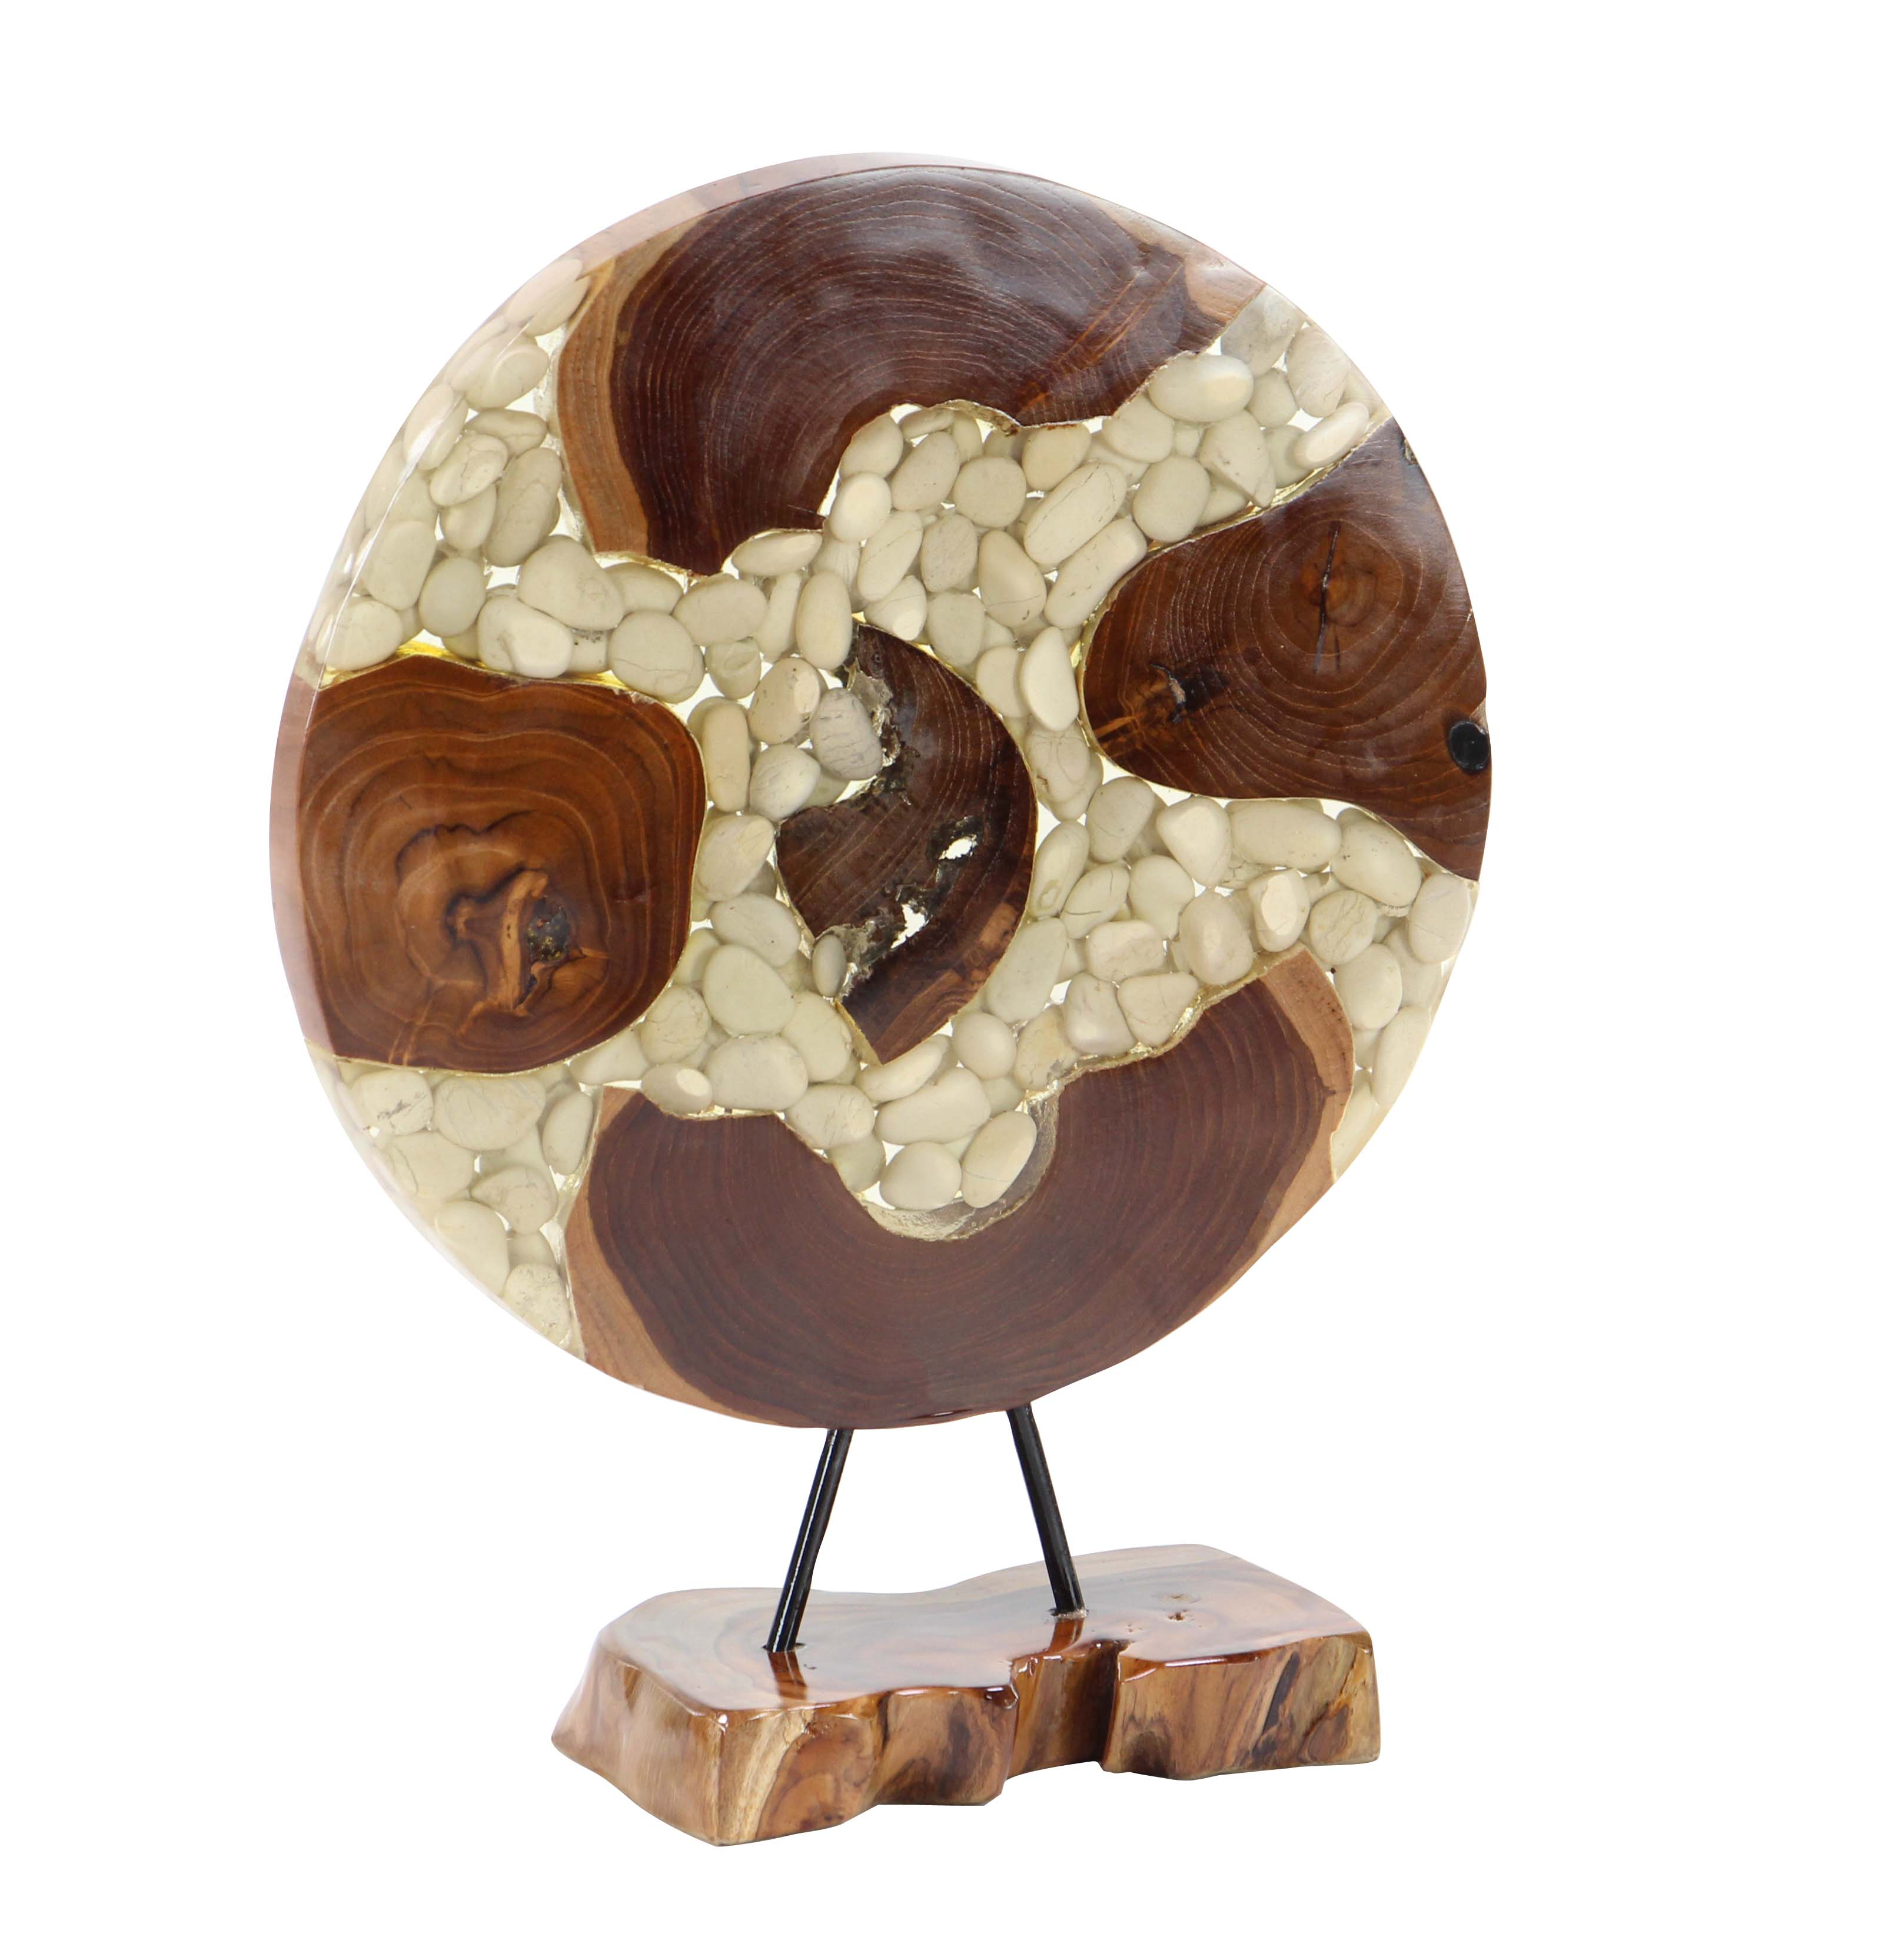 Decmode Contemporary Wood and Resin Round Stone Sculpture, Brown by DecMode